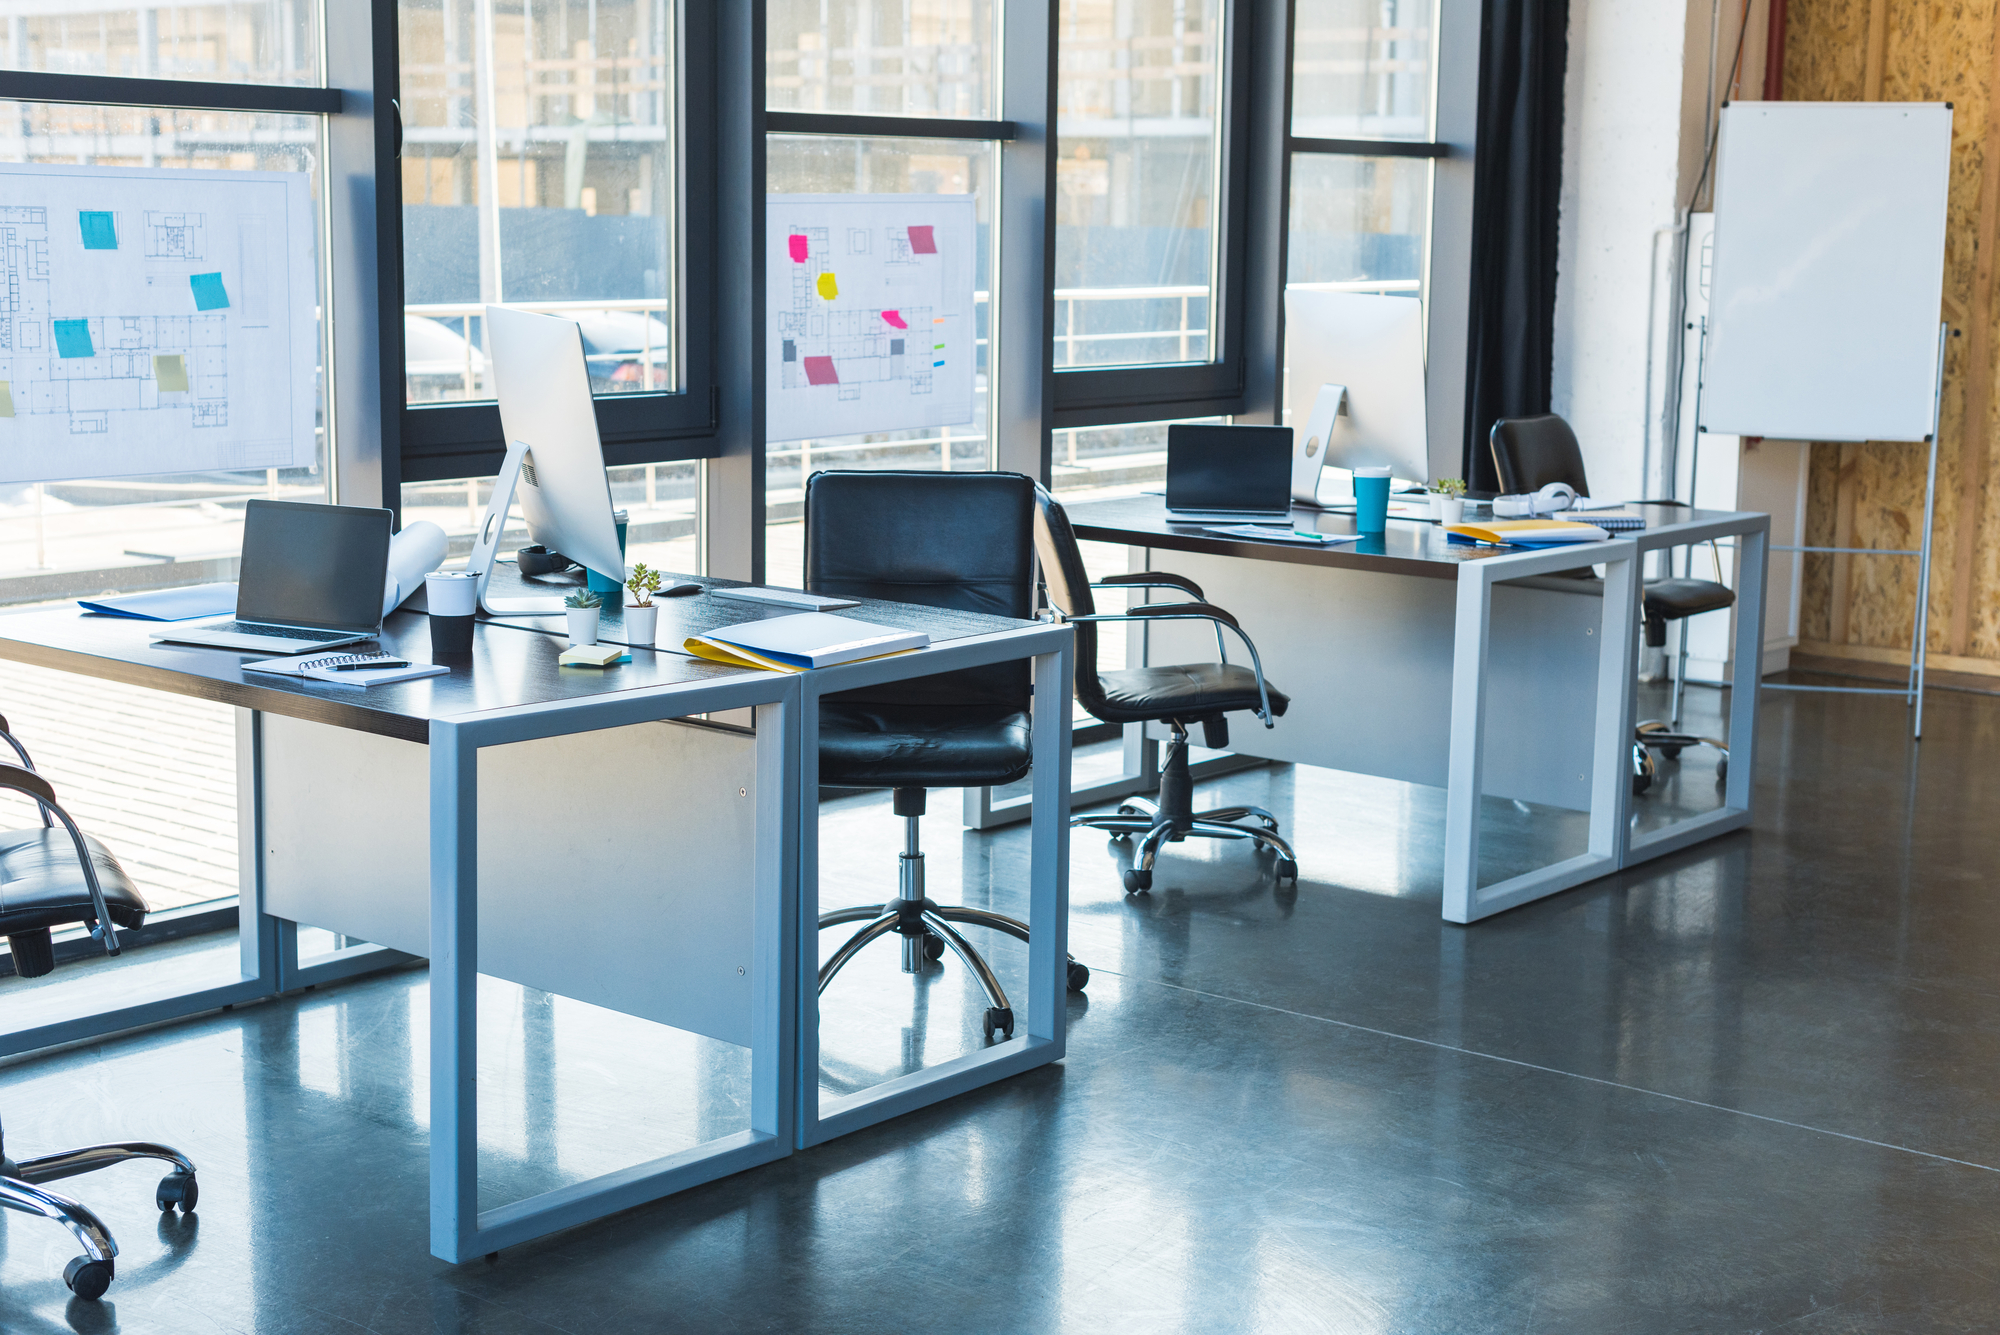 Dedicated Work Desks With Computers In Coworking Spaces for Multifamily Properties